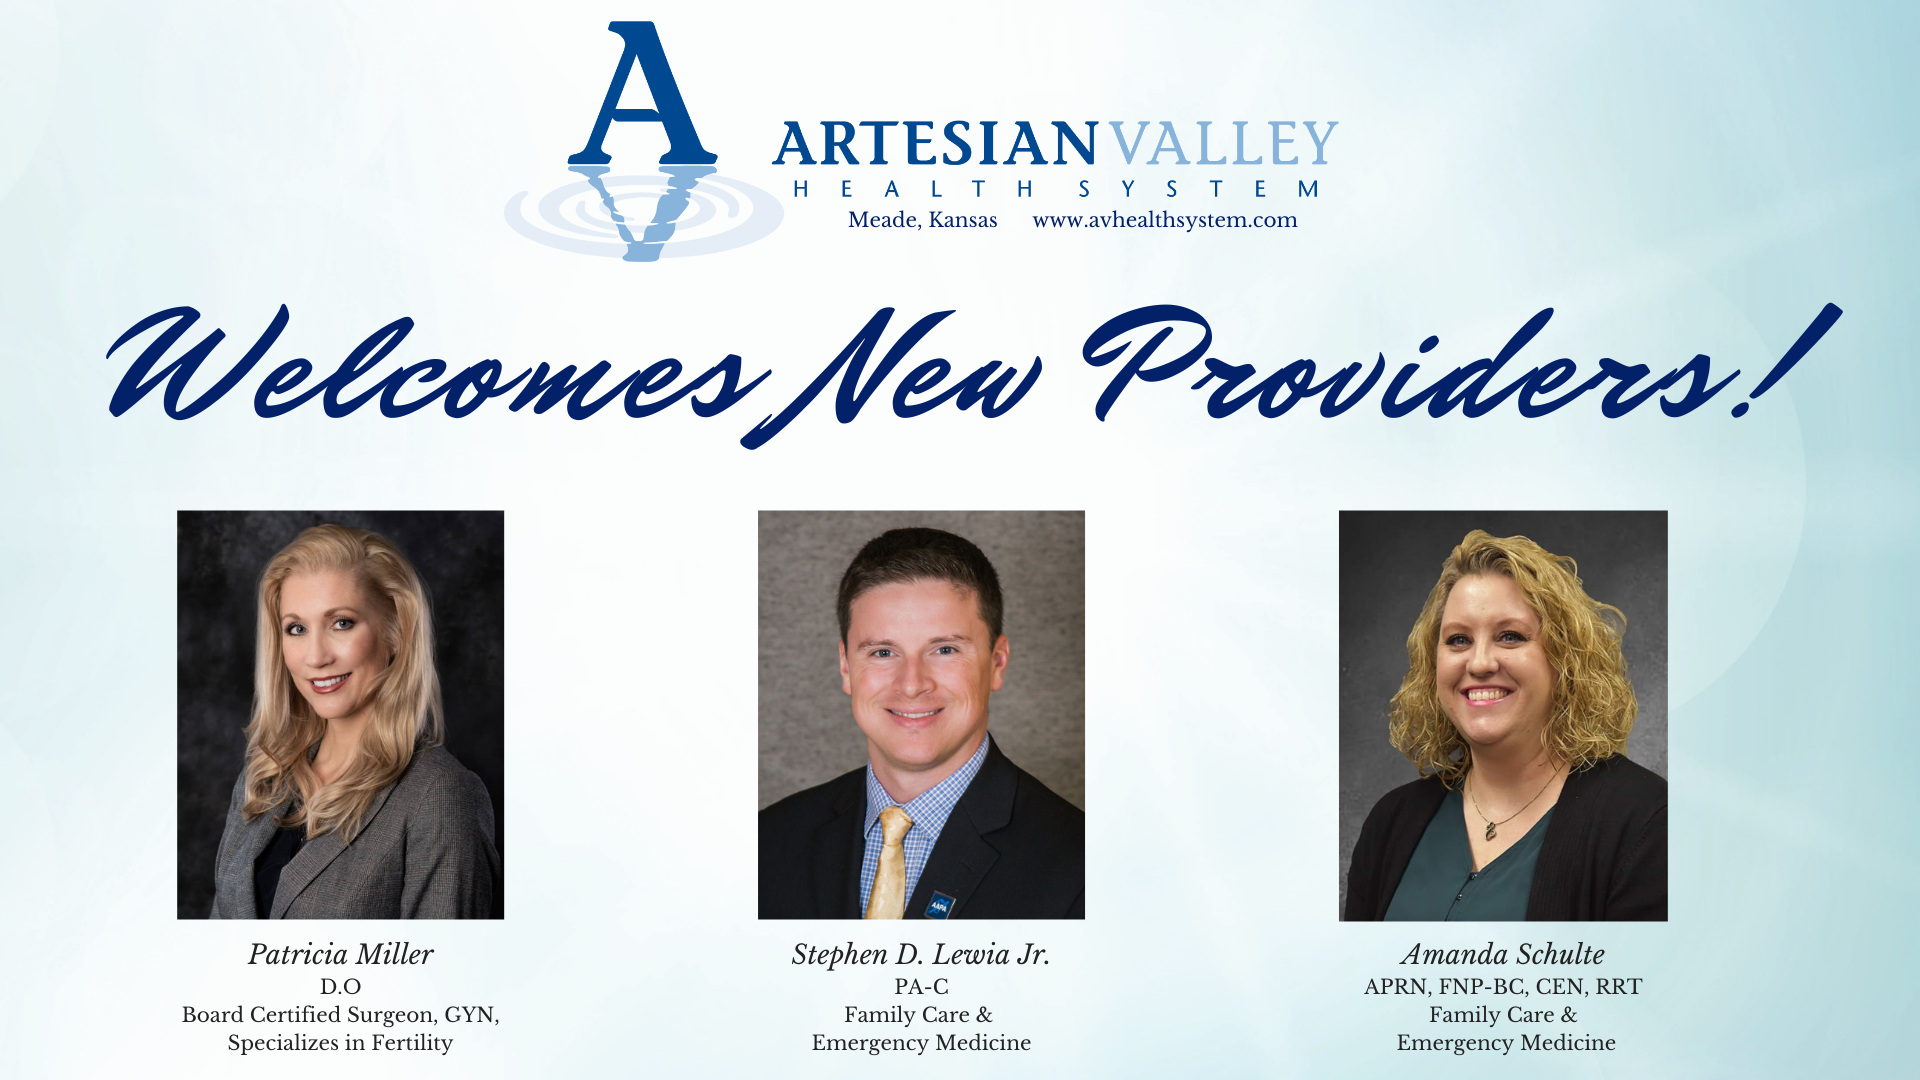 Artesian Valley Health System Welcomes New Providers!